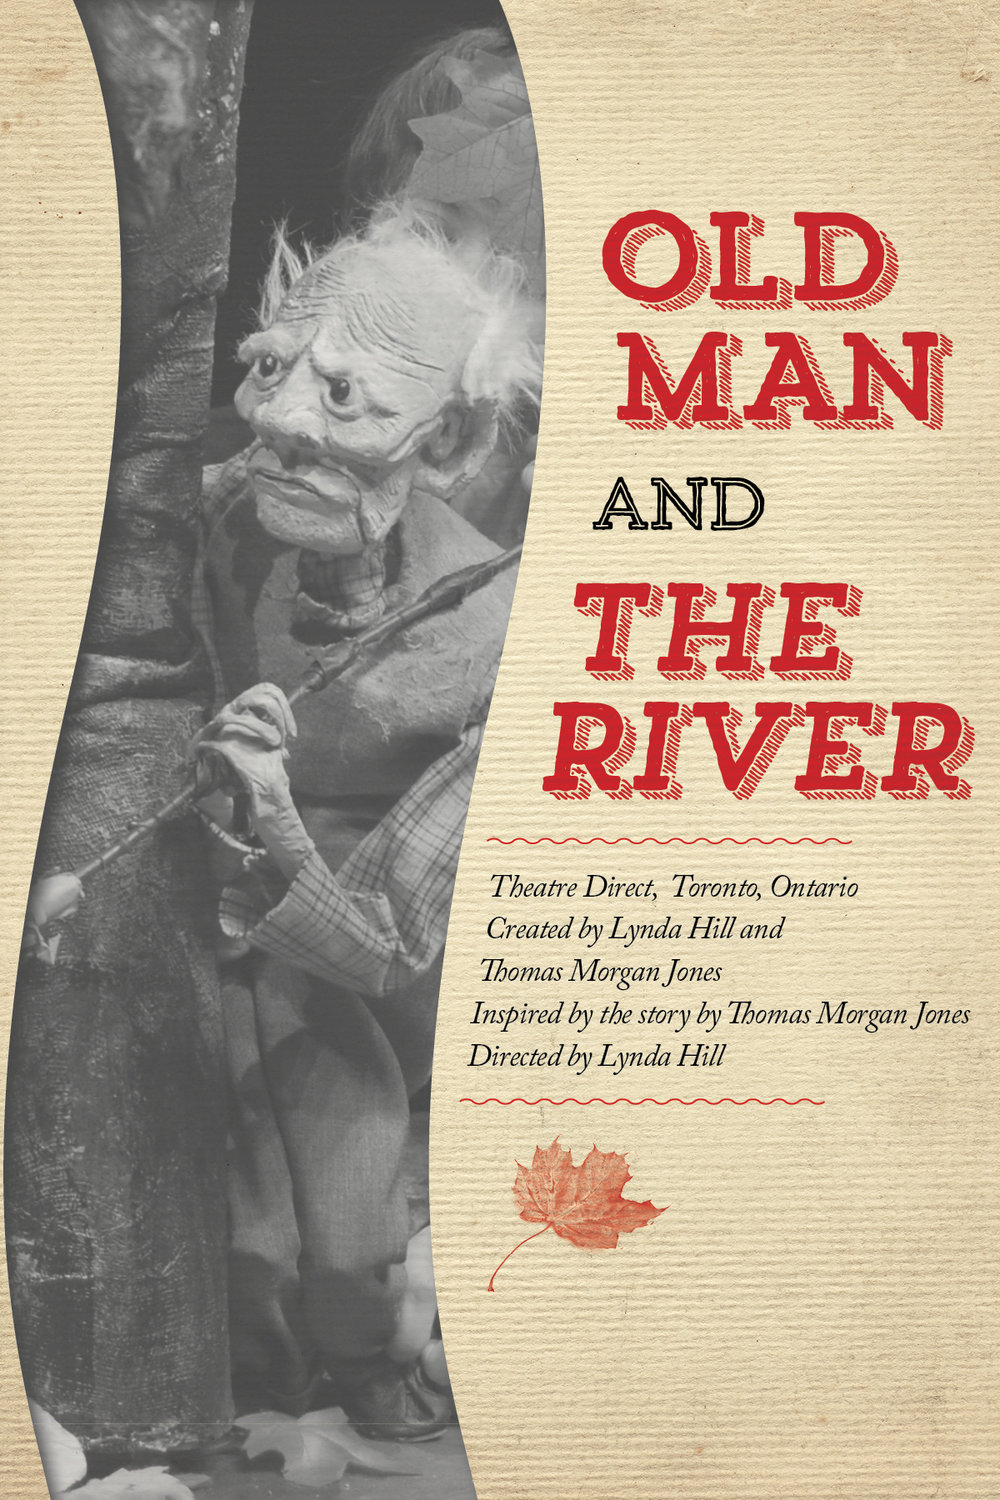 OLD MAN AND THE RIVER